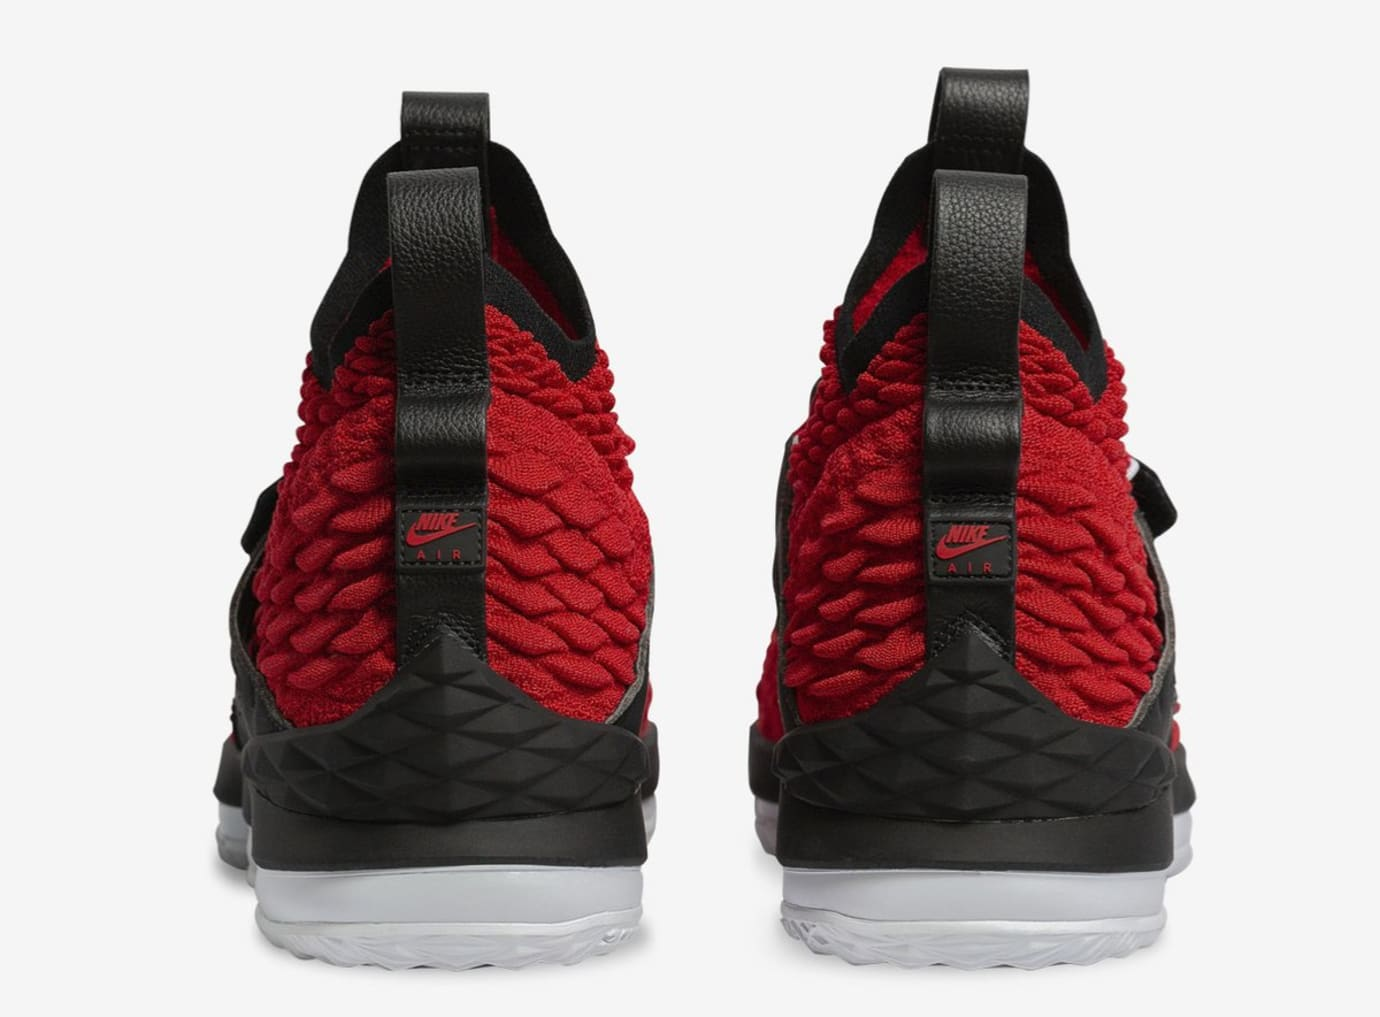 6365ea11c7 Nike LeBron 15 'Red Diamond Turf' #LeBronWatch SNKRS The Draw ...